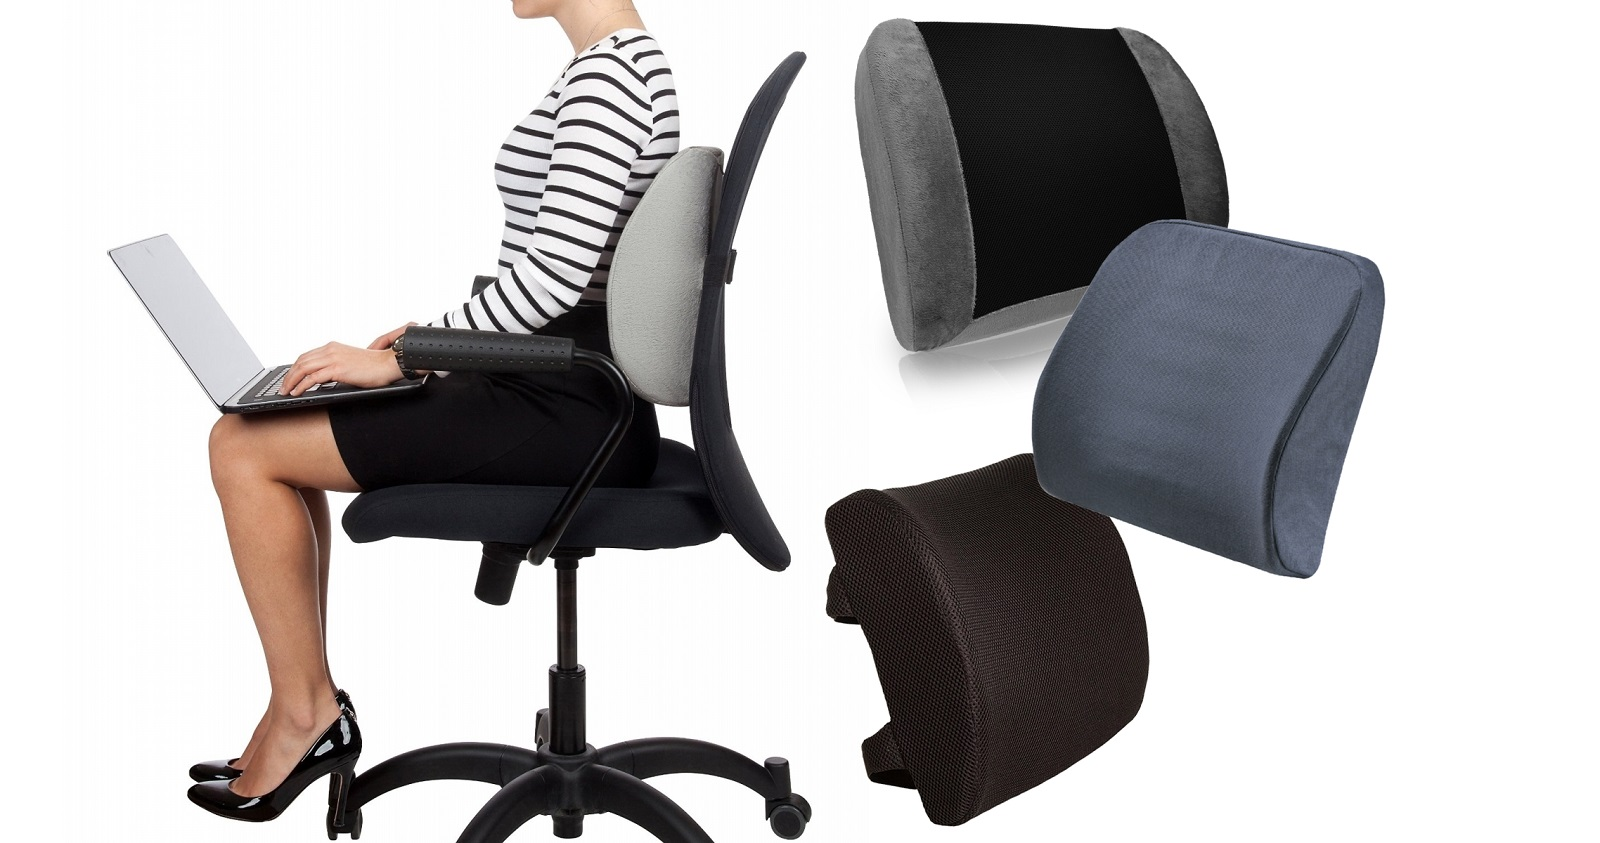 Best Lumbar Support Cushion For Office Chair Chair And